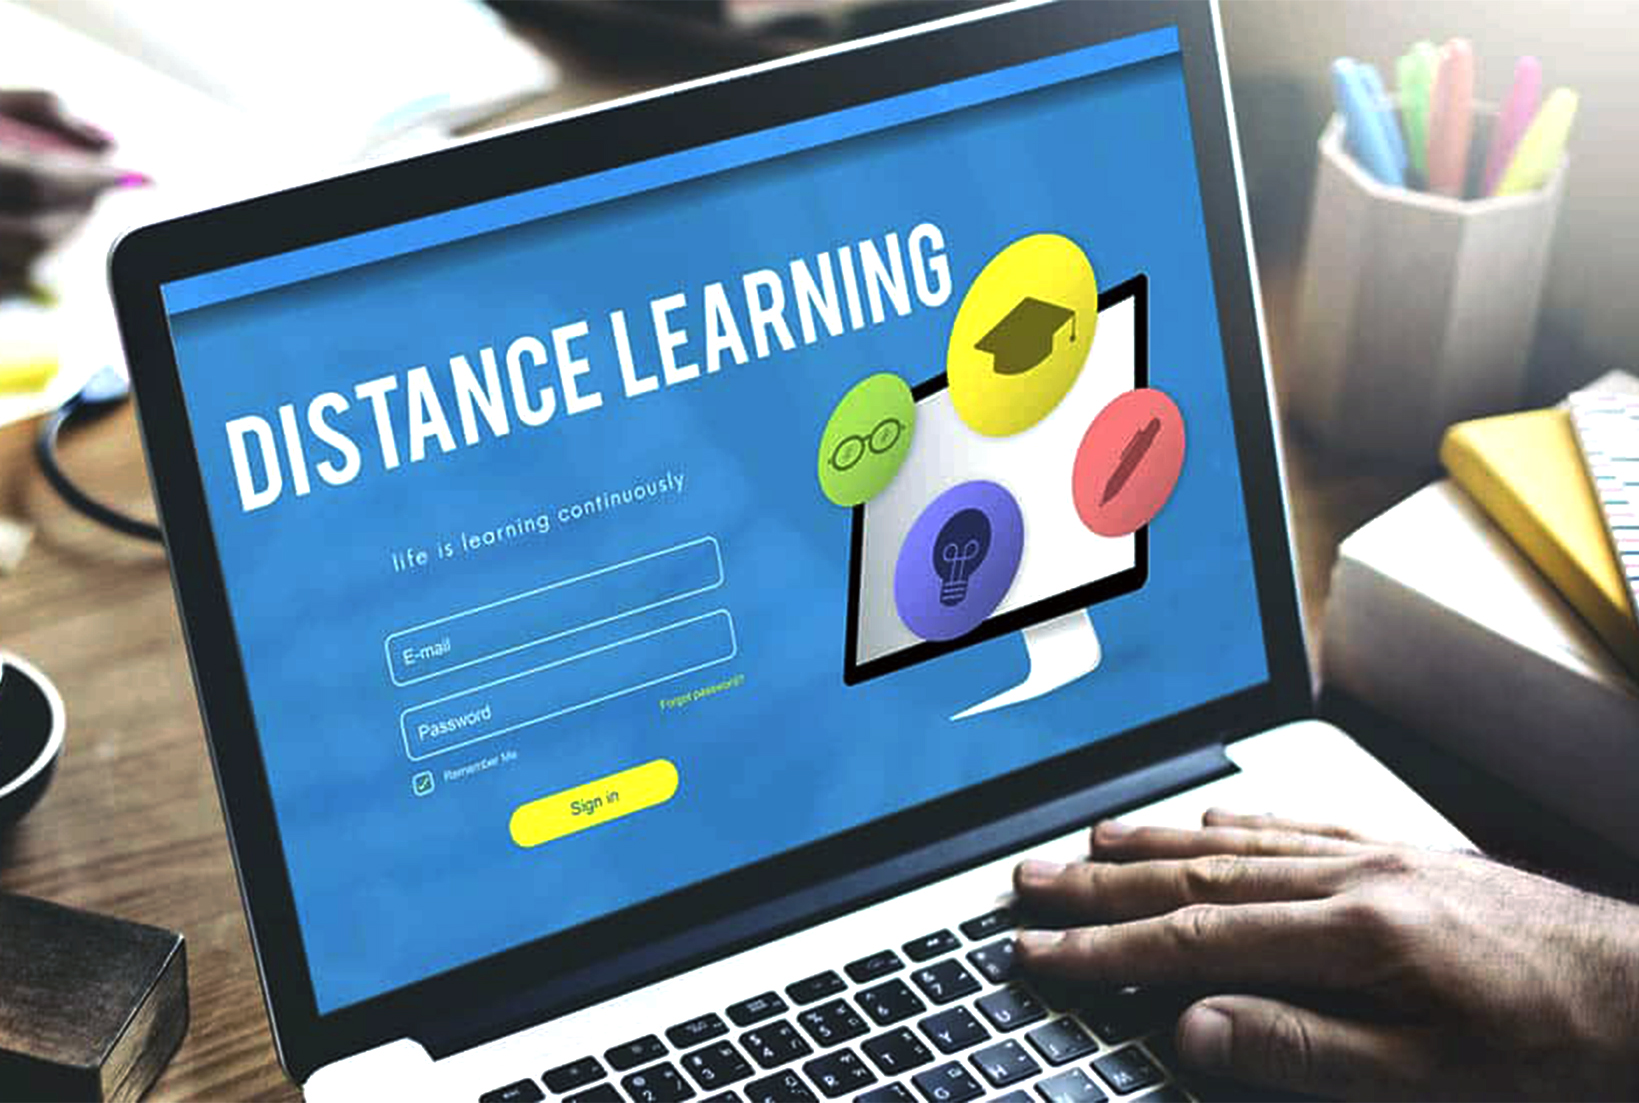 Perspectives on distance learning